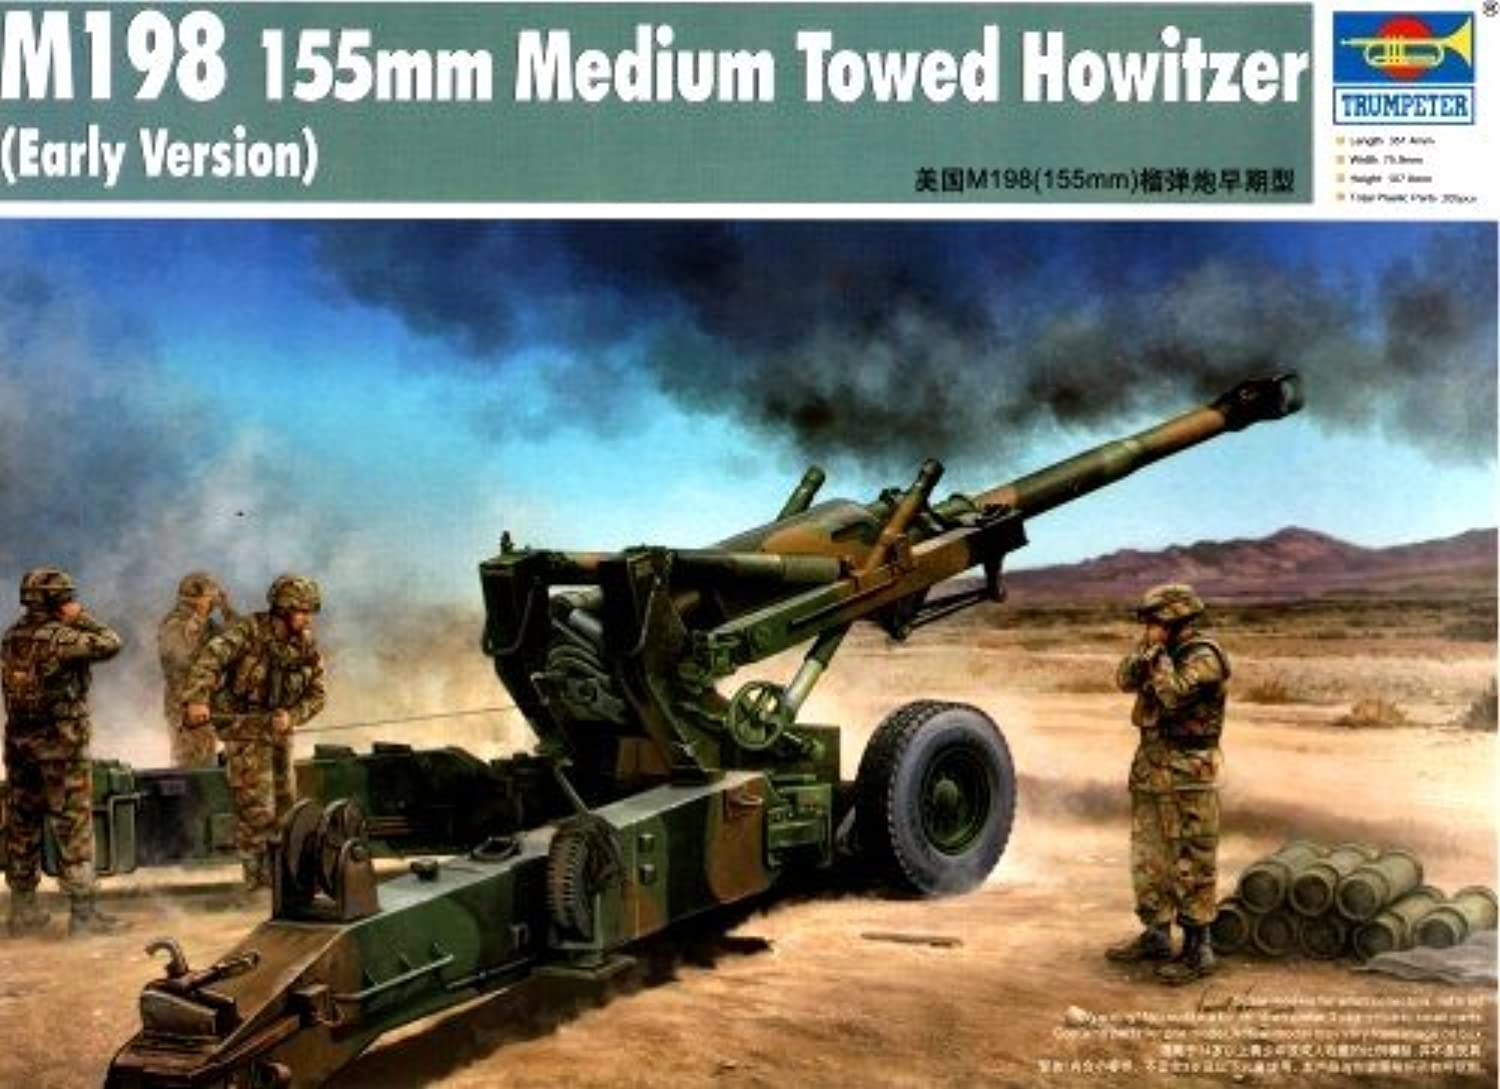 Trumpeter 1 35 M198 Medium Towed Howitzer Early Version Model Kit